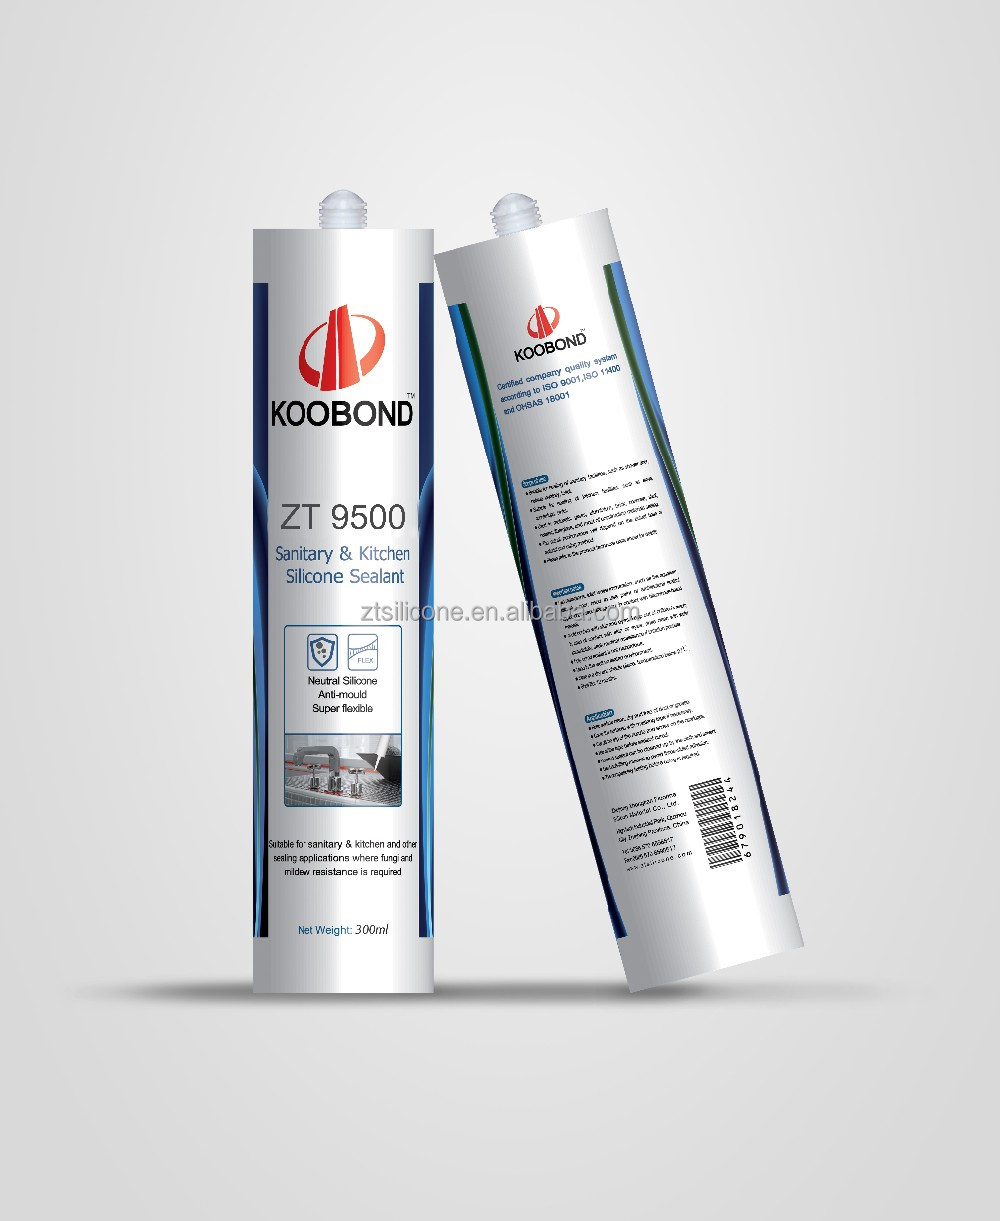 Good quality anti-fungus Silicone Sealant